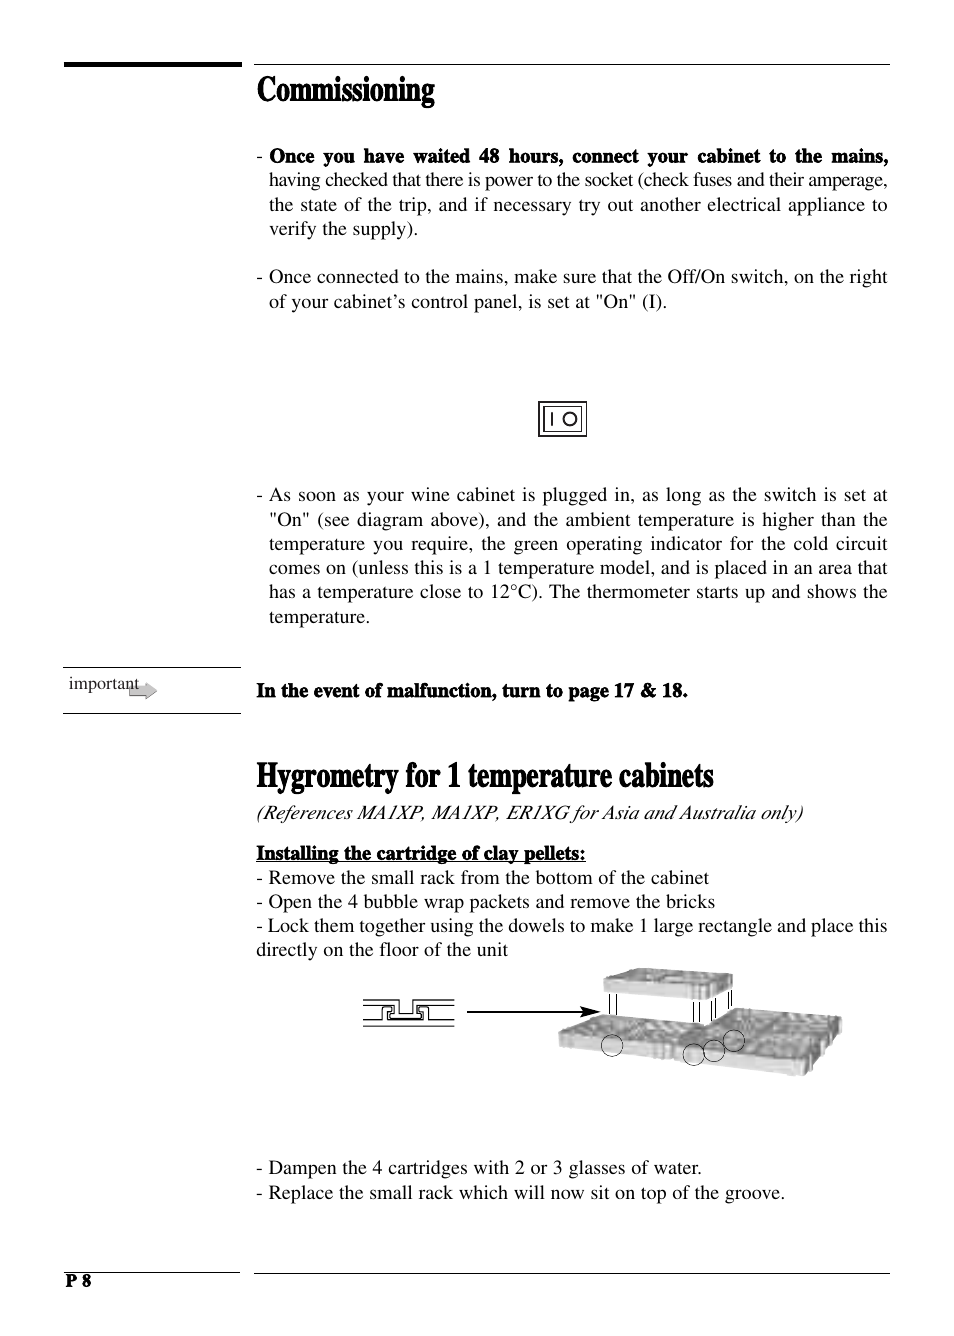 Commissioning Hygrometry For 1 Temperature Cabinets Vintage Diagram Black Is In Check 2 Double Cellars Transtherm Castel Glass Door User Manual Page 8 21